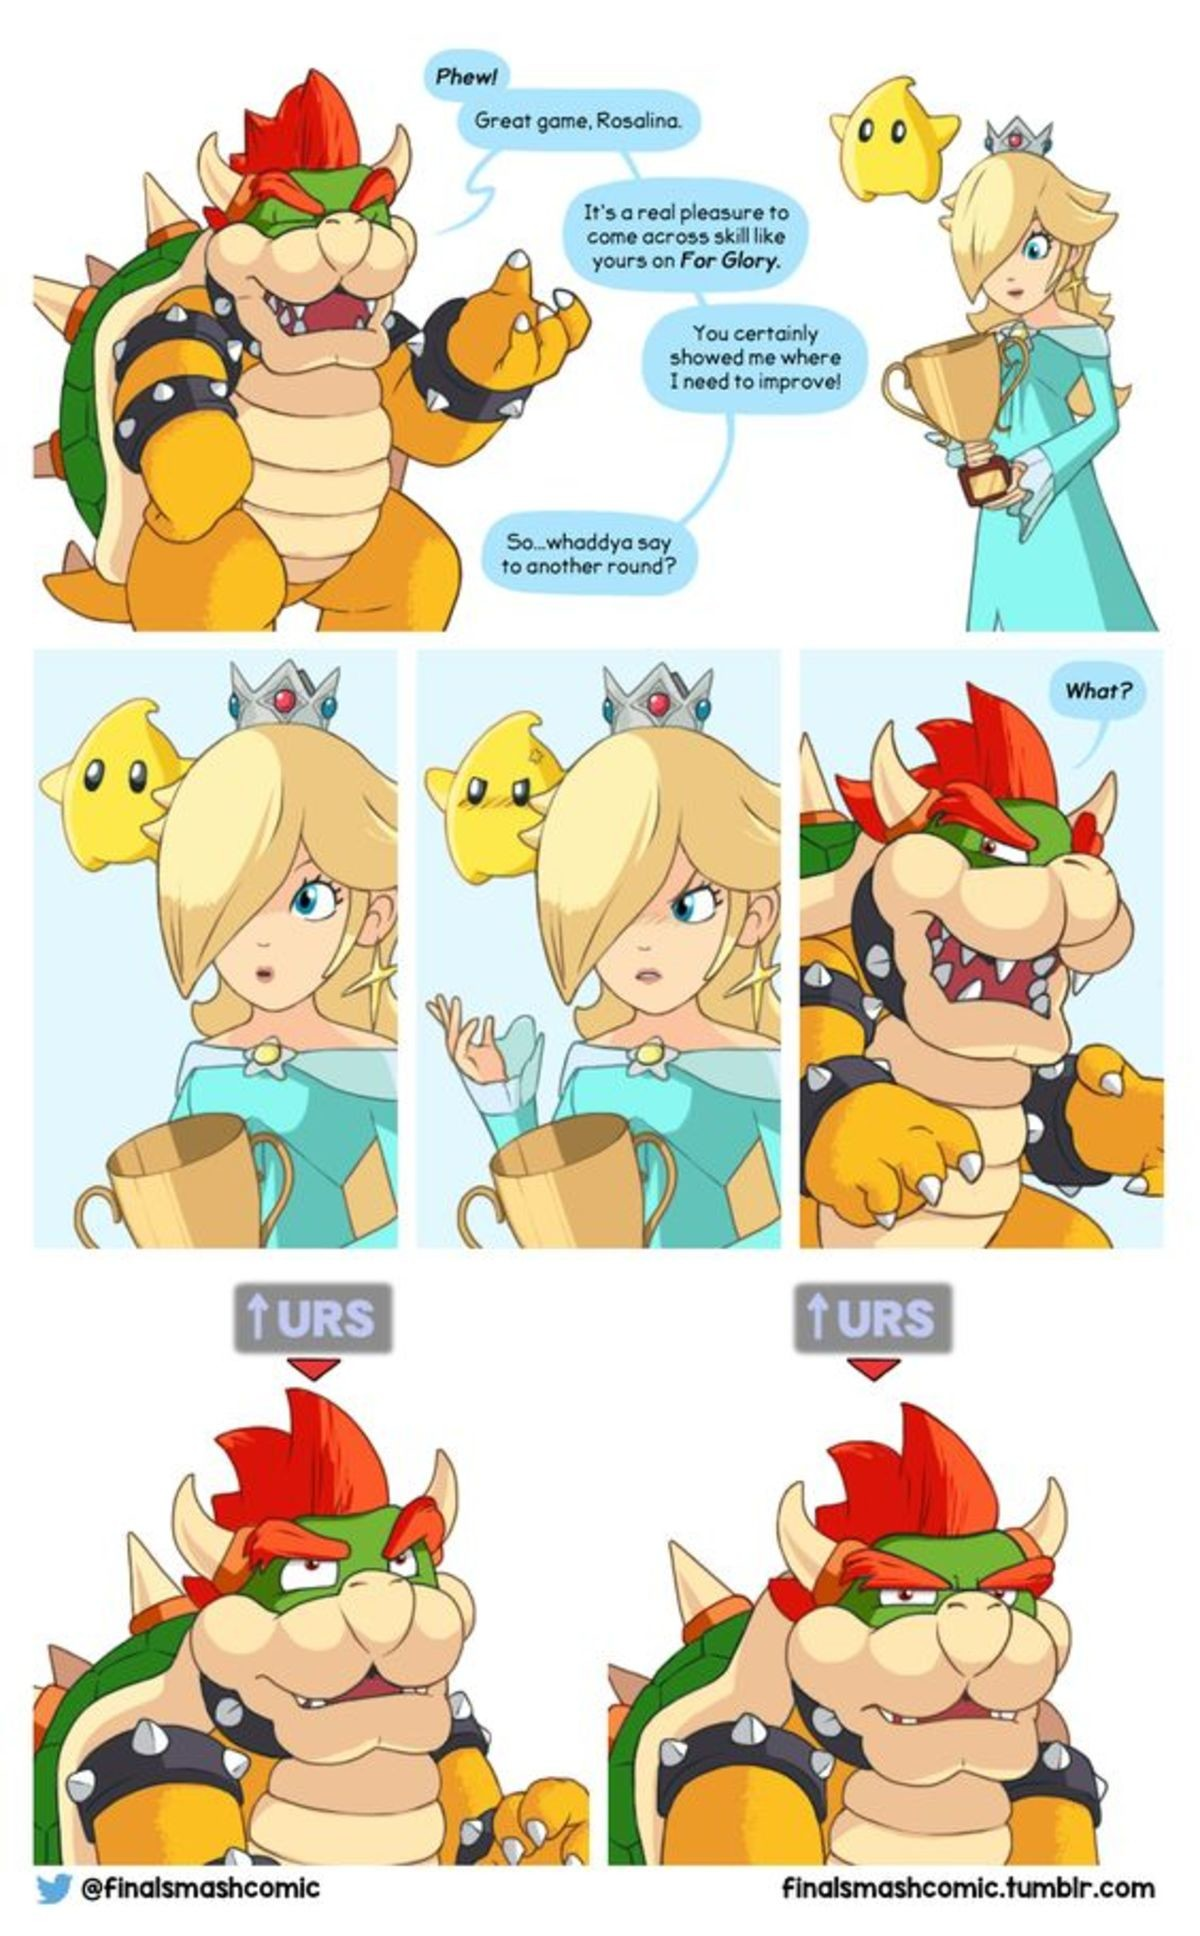 bowser. .. You say that like Bowser didn't have the best grab game in Sm4sh.